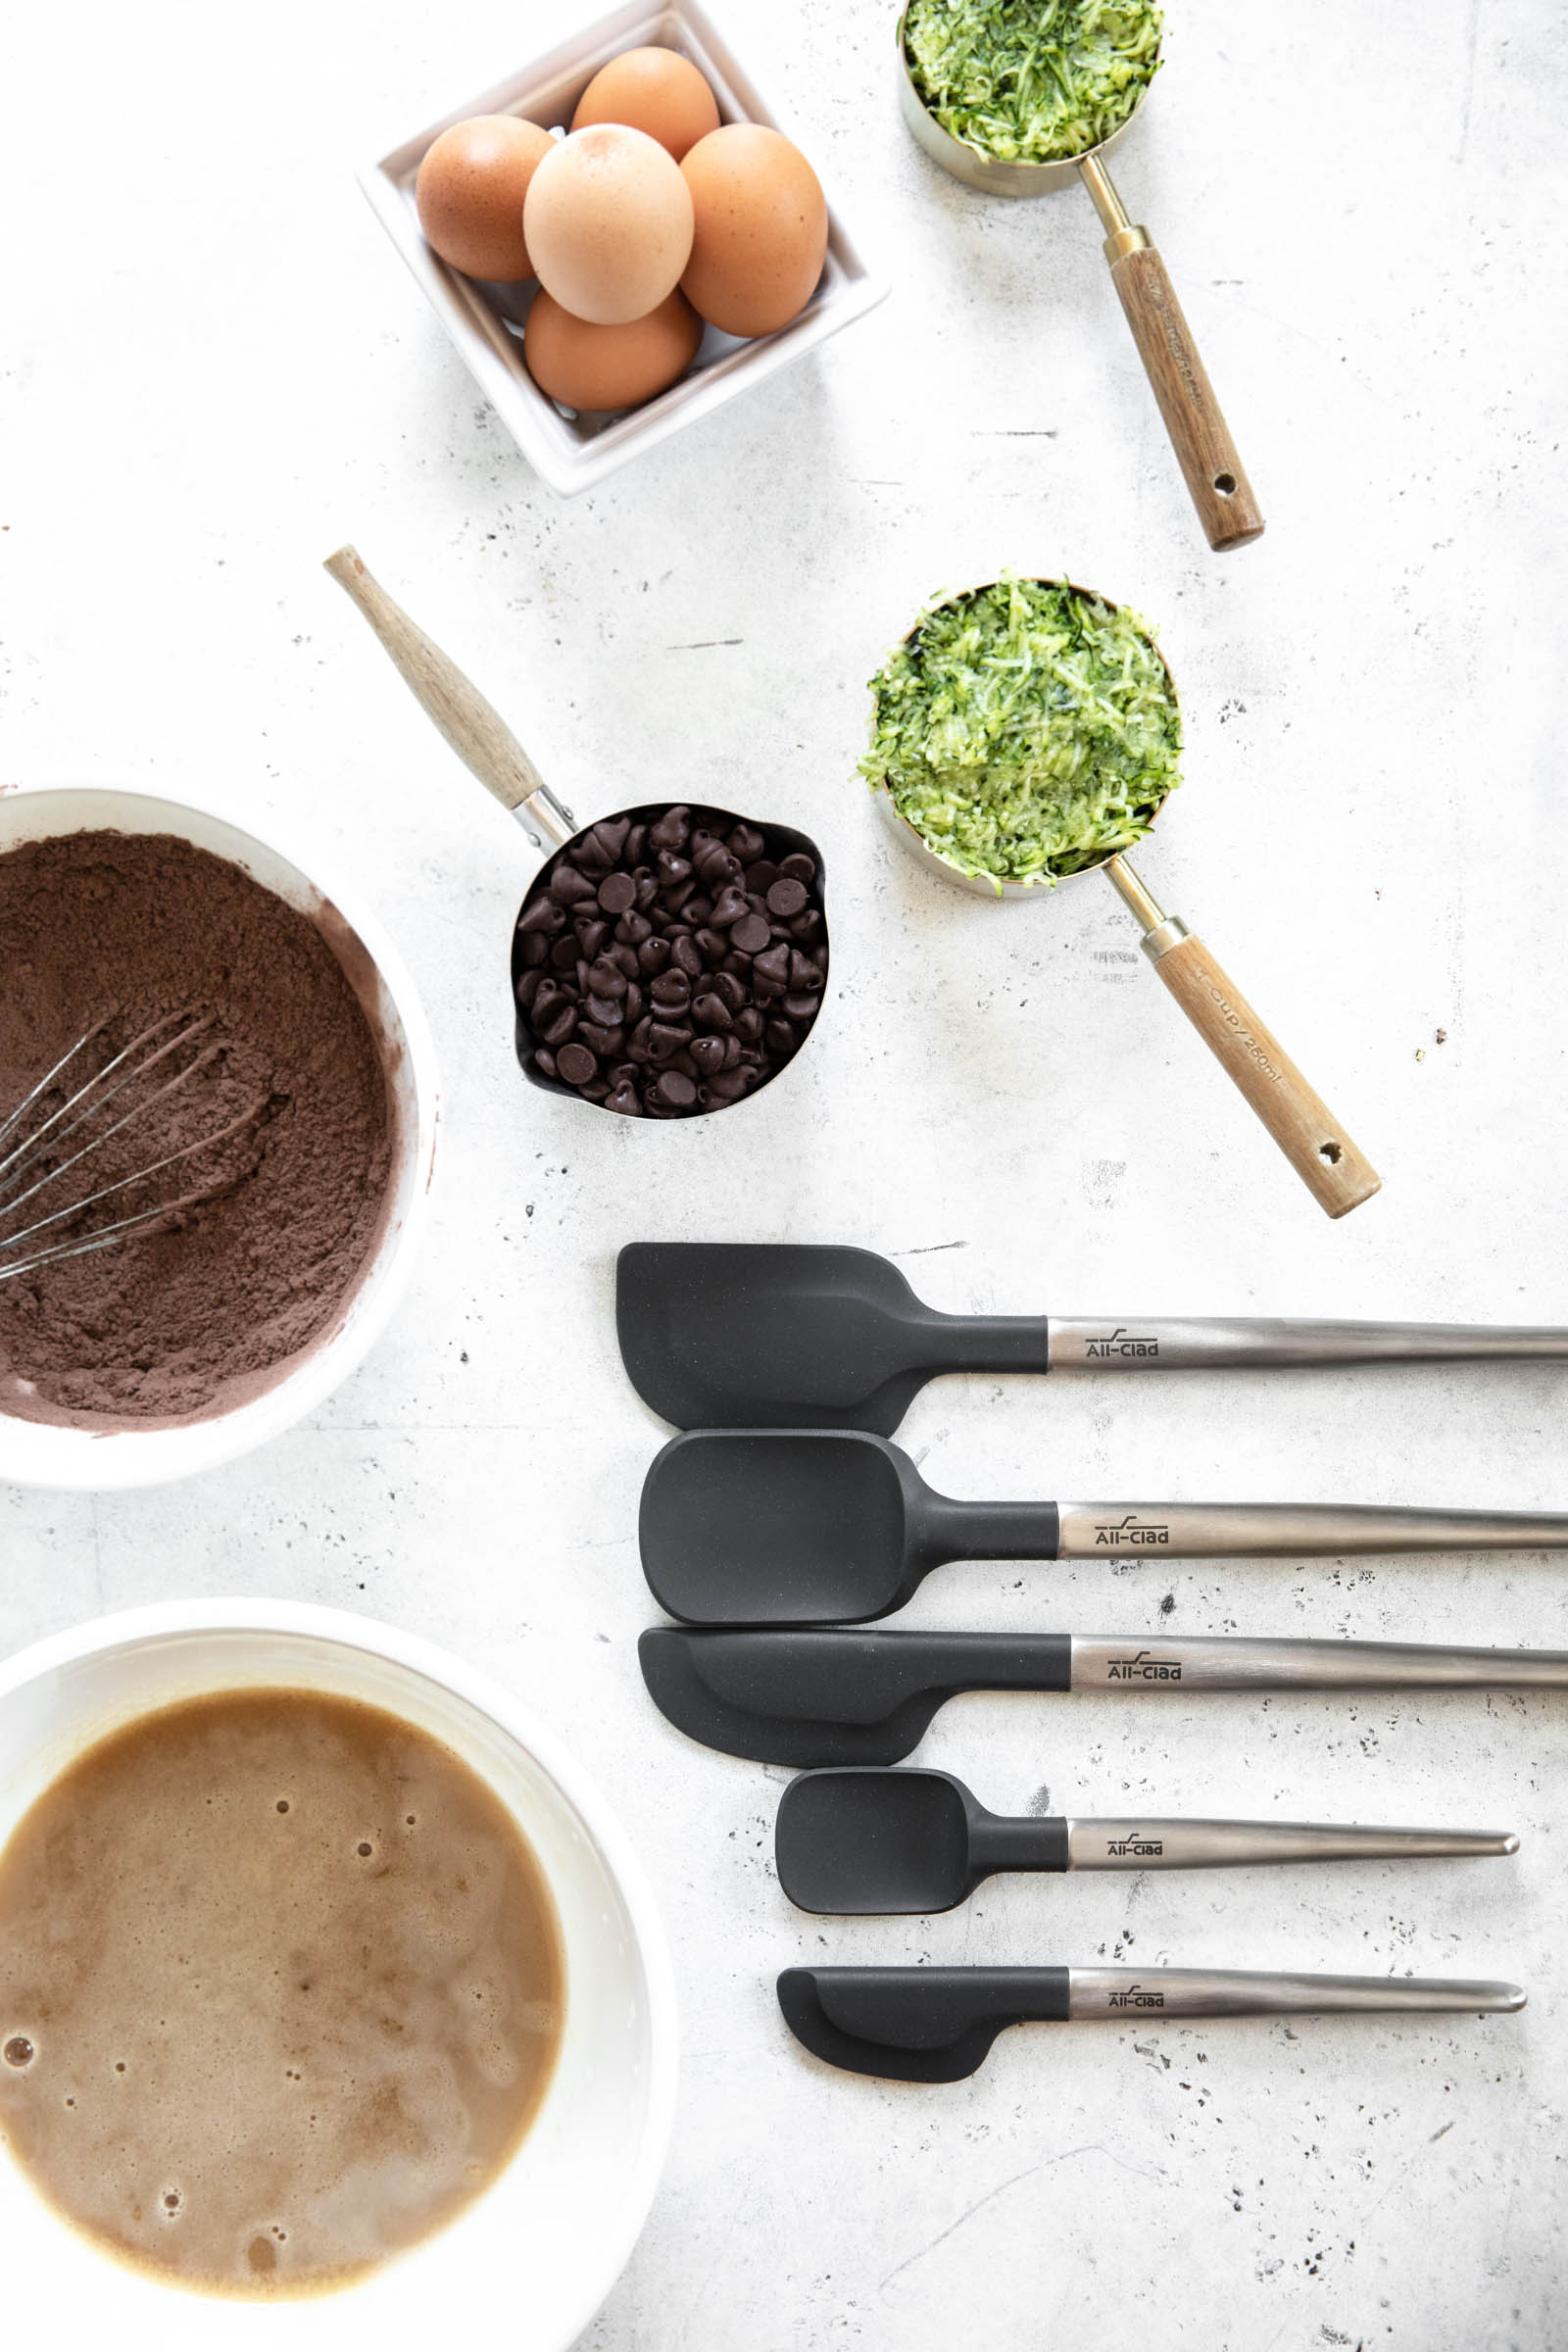 silicone baking tools with ingredients for chocolate zucchini bread